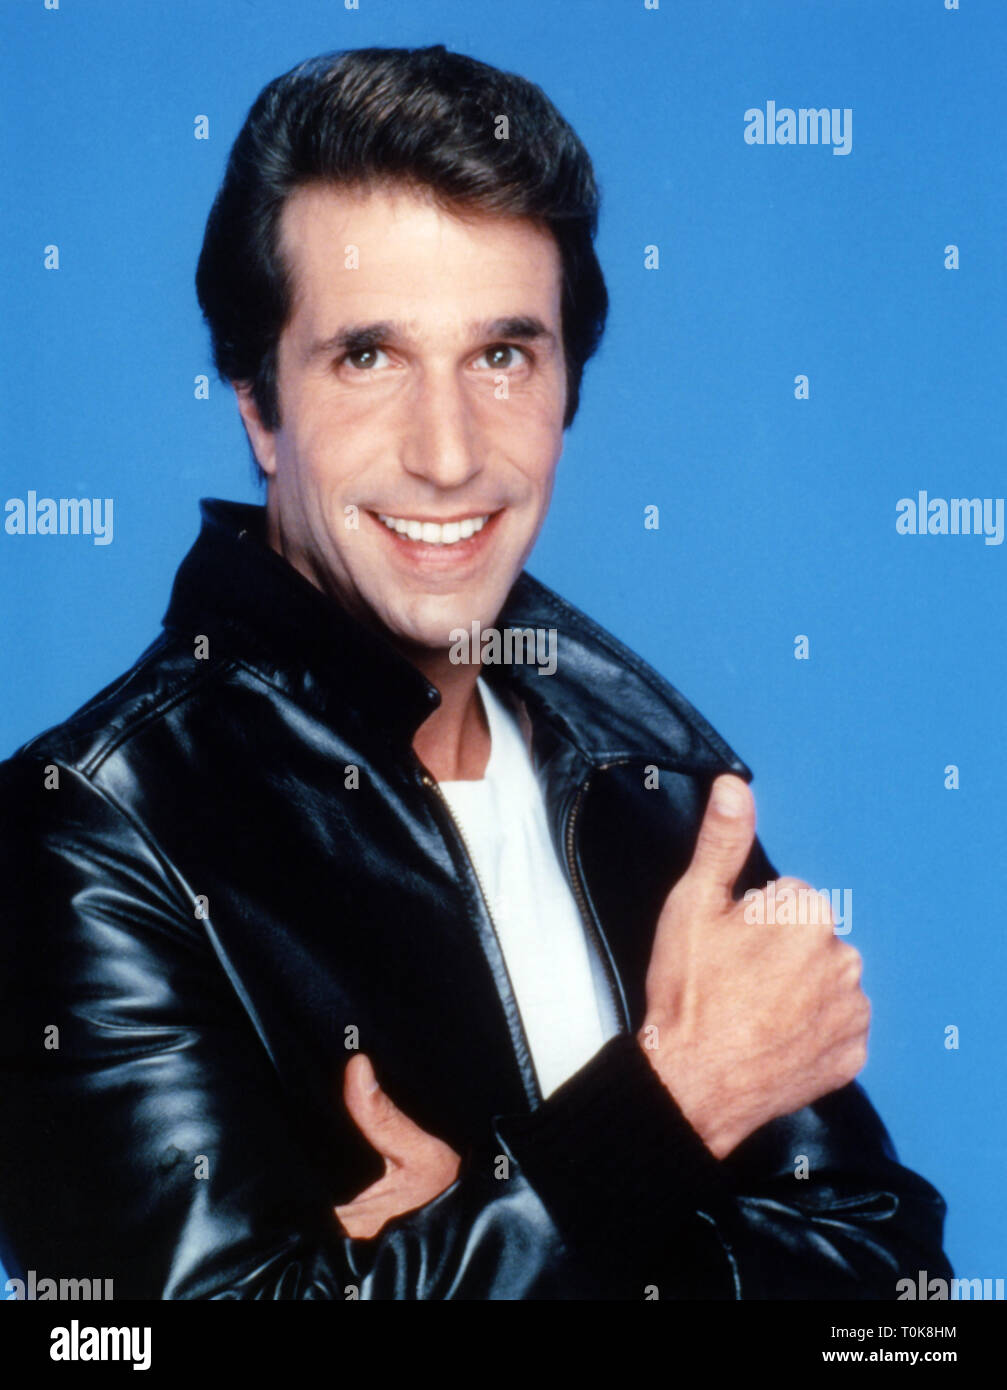 HENRY WINKLER, HAPPY DAYS, 1974 Stock Photo